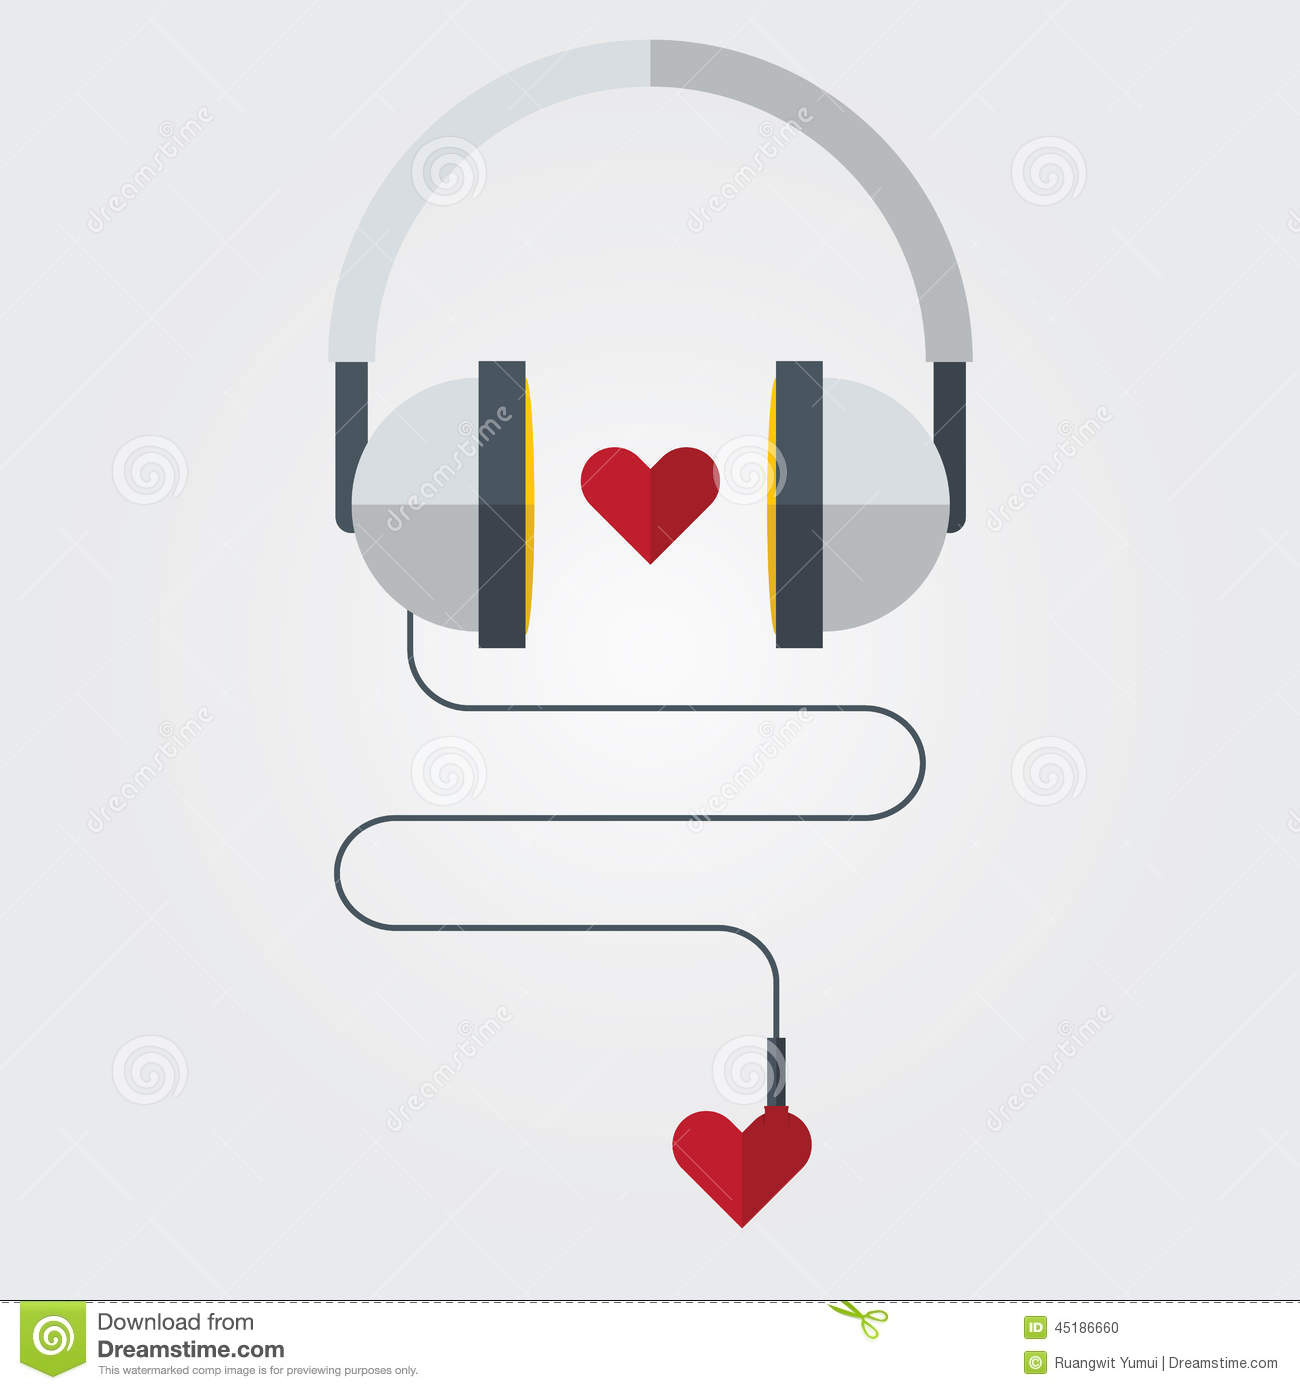 Flat icon of headphone with red heart on love music theme vector flat icon of headphone with red heart on love music theme vector ccuart Image collections